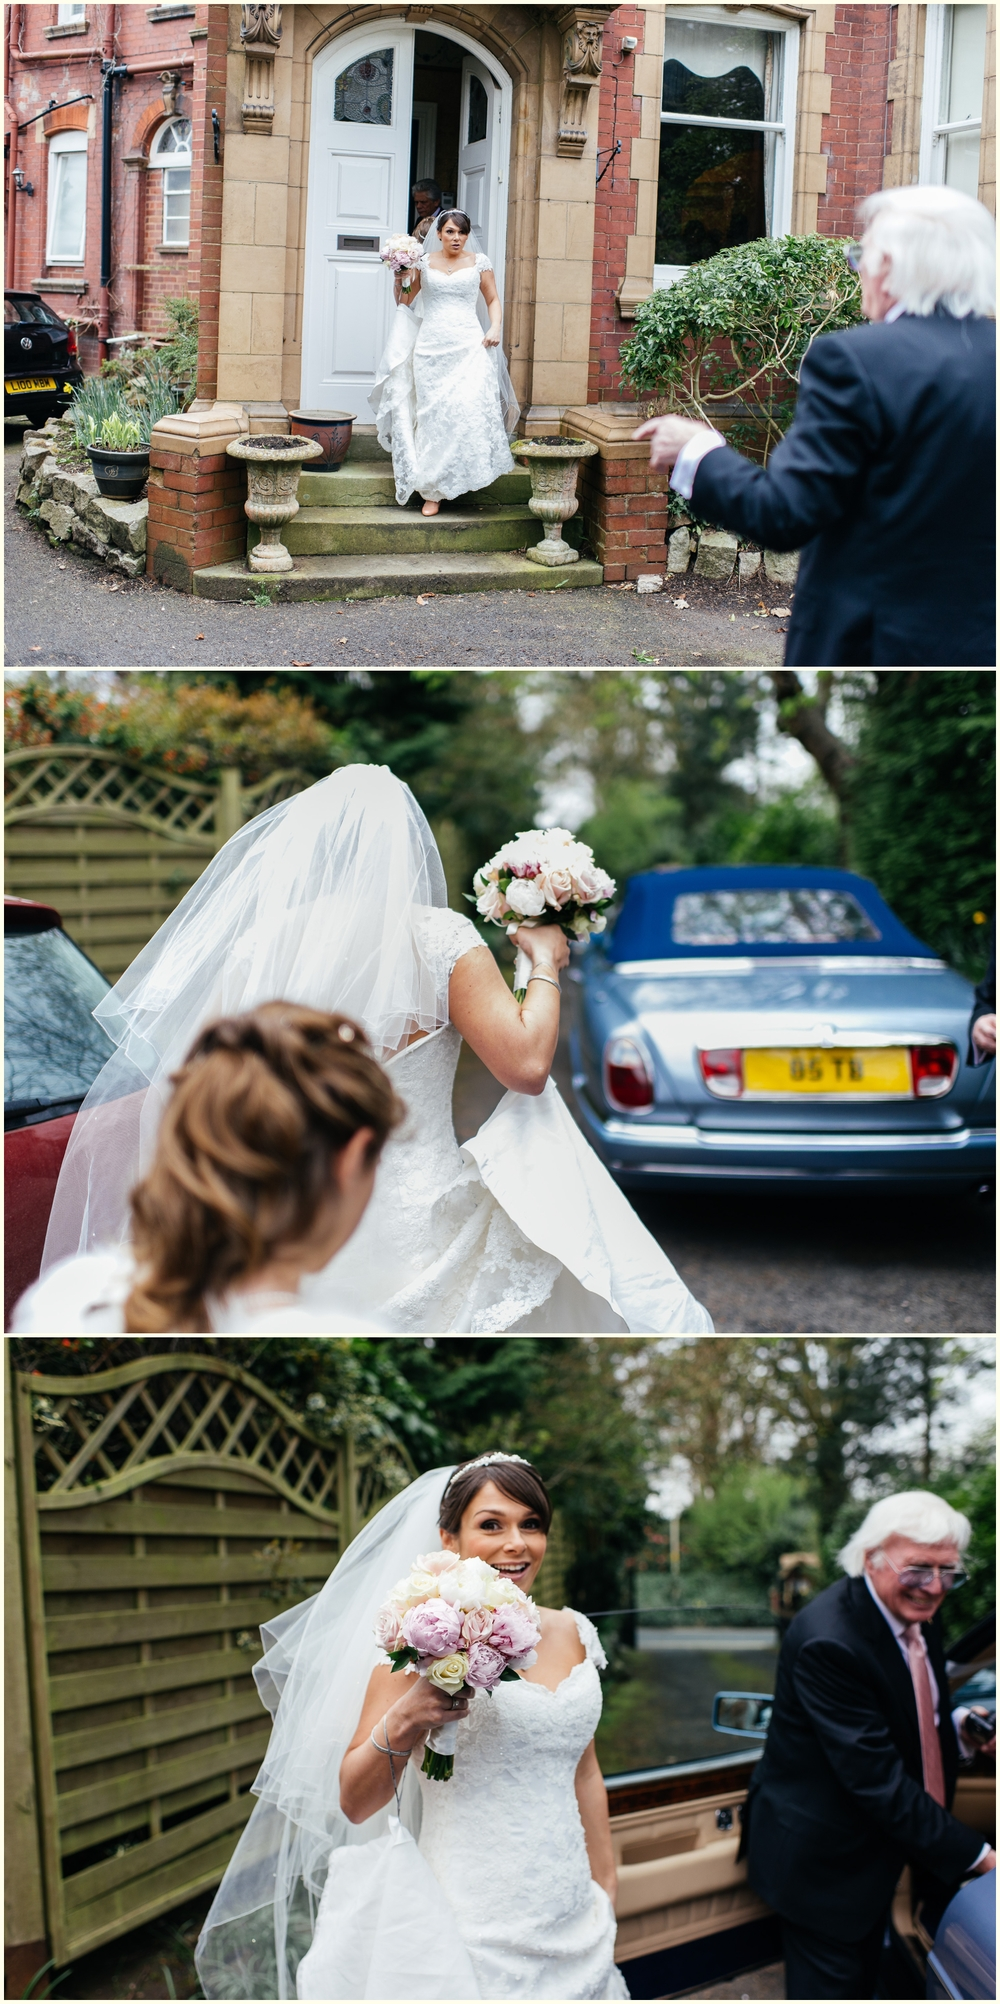 Nikki_Cooper_Photography_Rich&Sarah_Wedding_Photos_Crown_and_Sandys_Ombersley_Worcester_1019.jpg